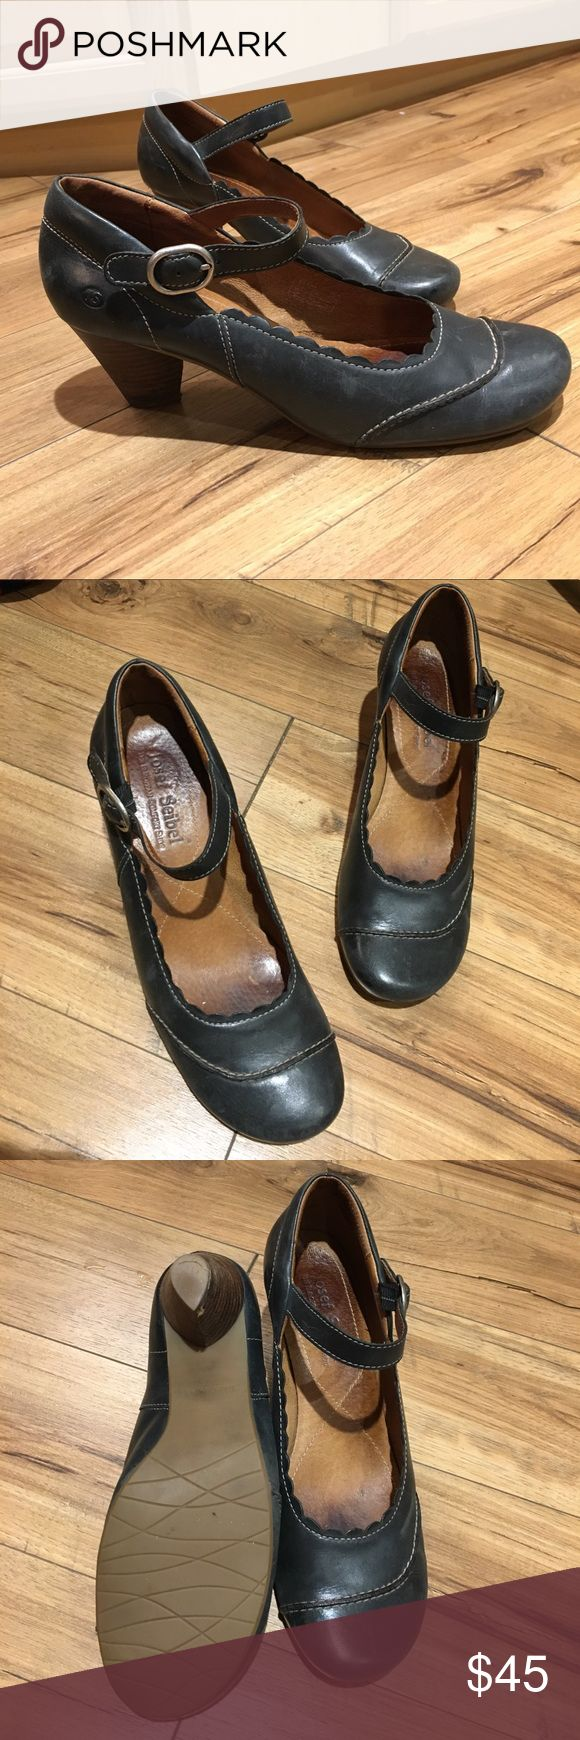 Josef Seibel leather heels, size 10. European comfort shoe with stacked heel to keep you stylish and comfortable all day long. Josef Seibel  Shoes Heels